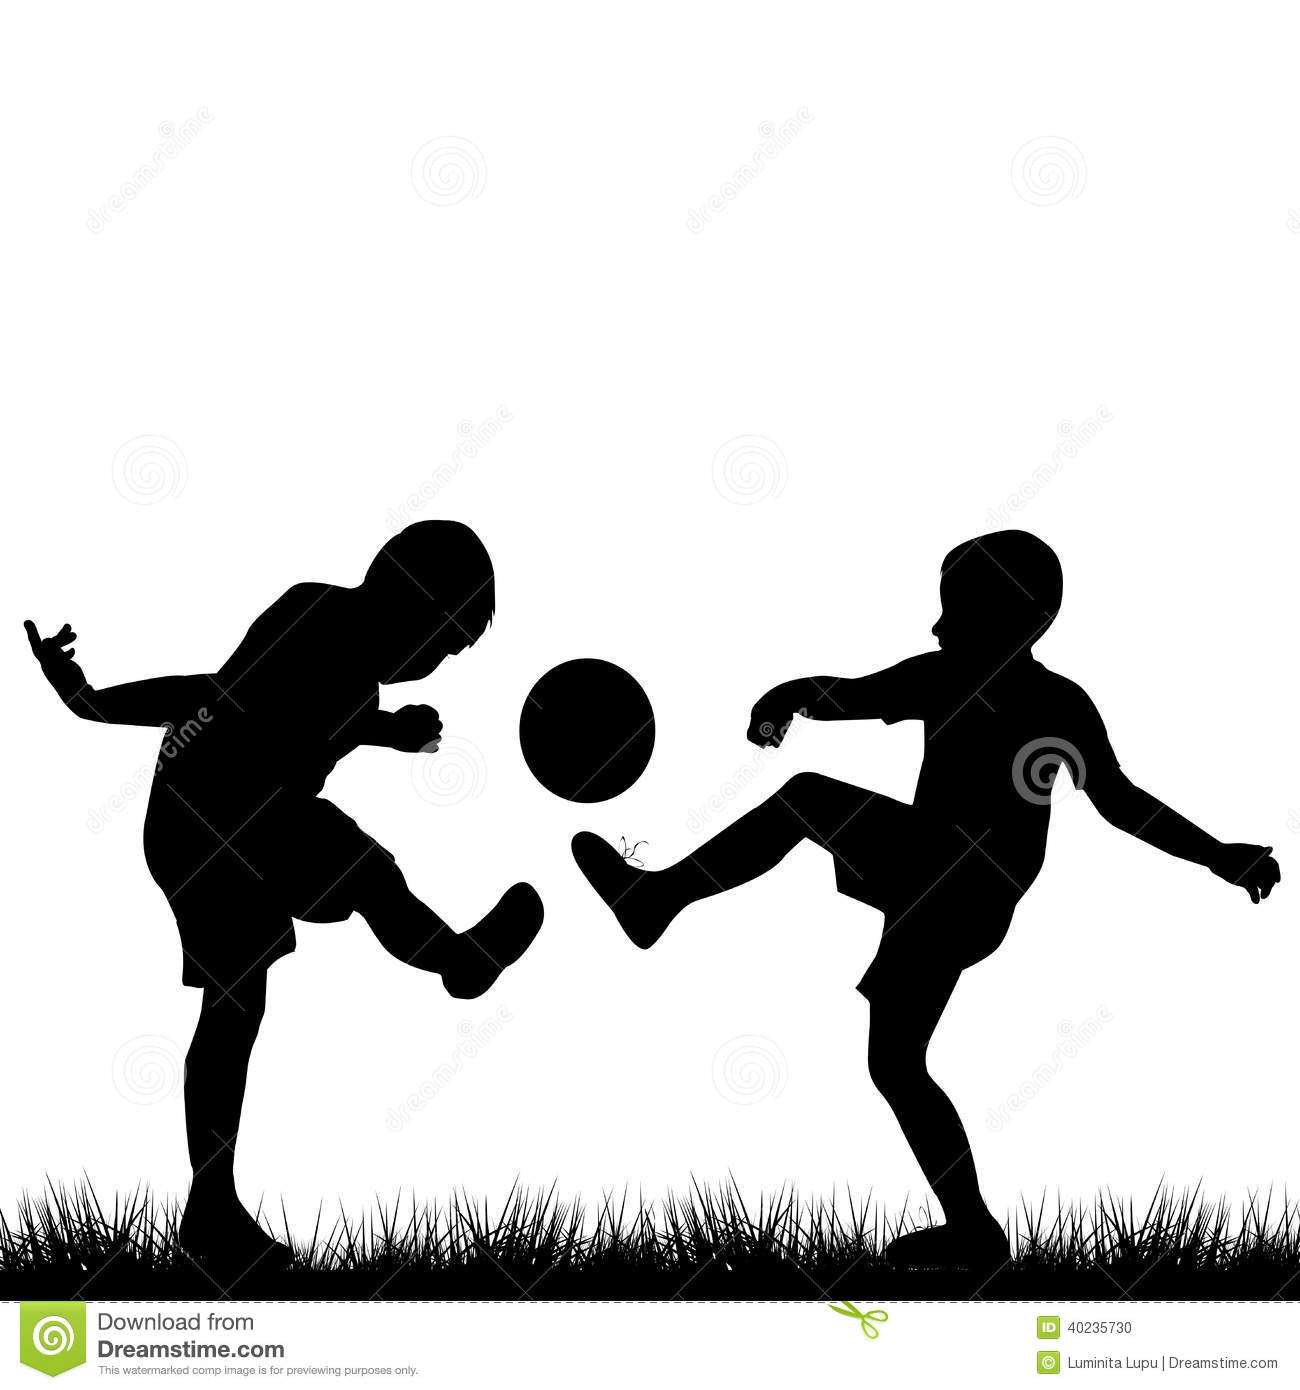 Silhouettes Of Children Playing Football Stock Vector ...